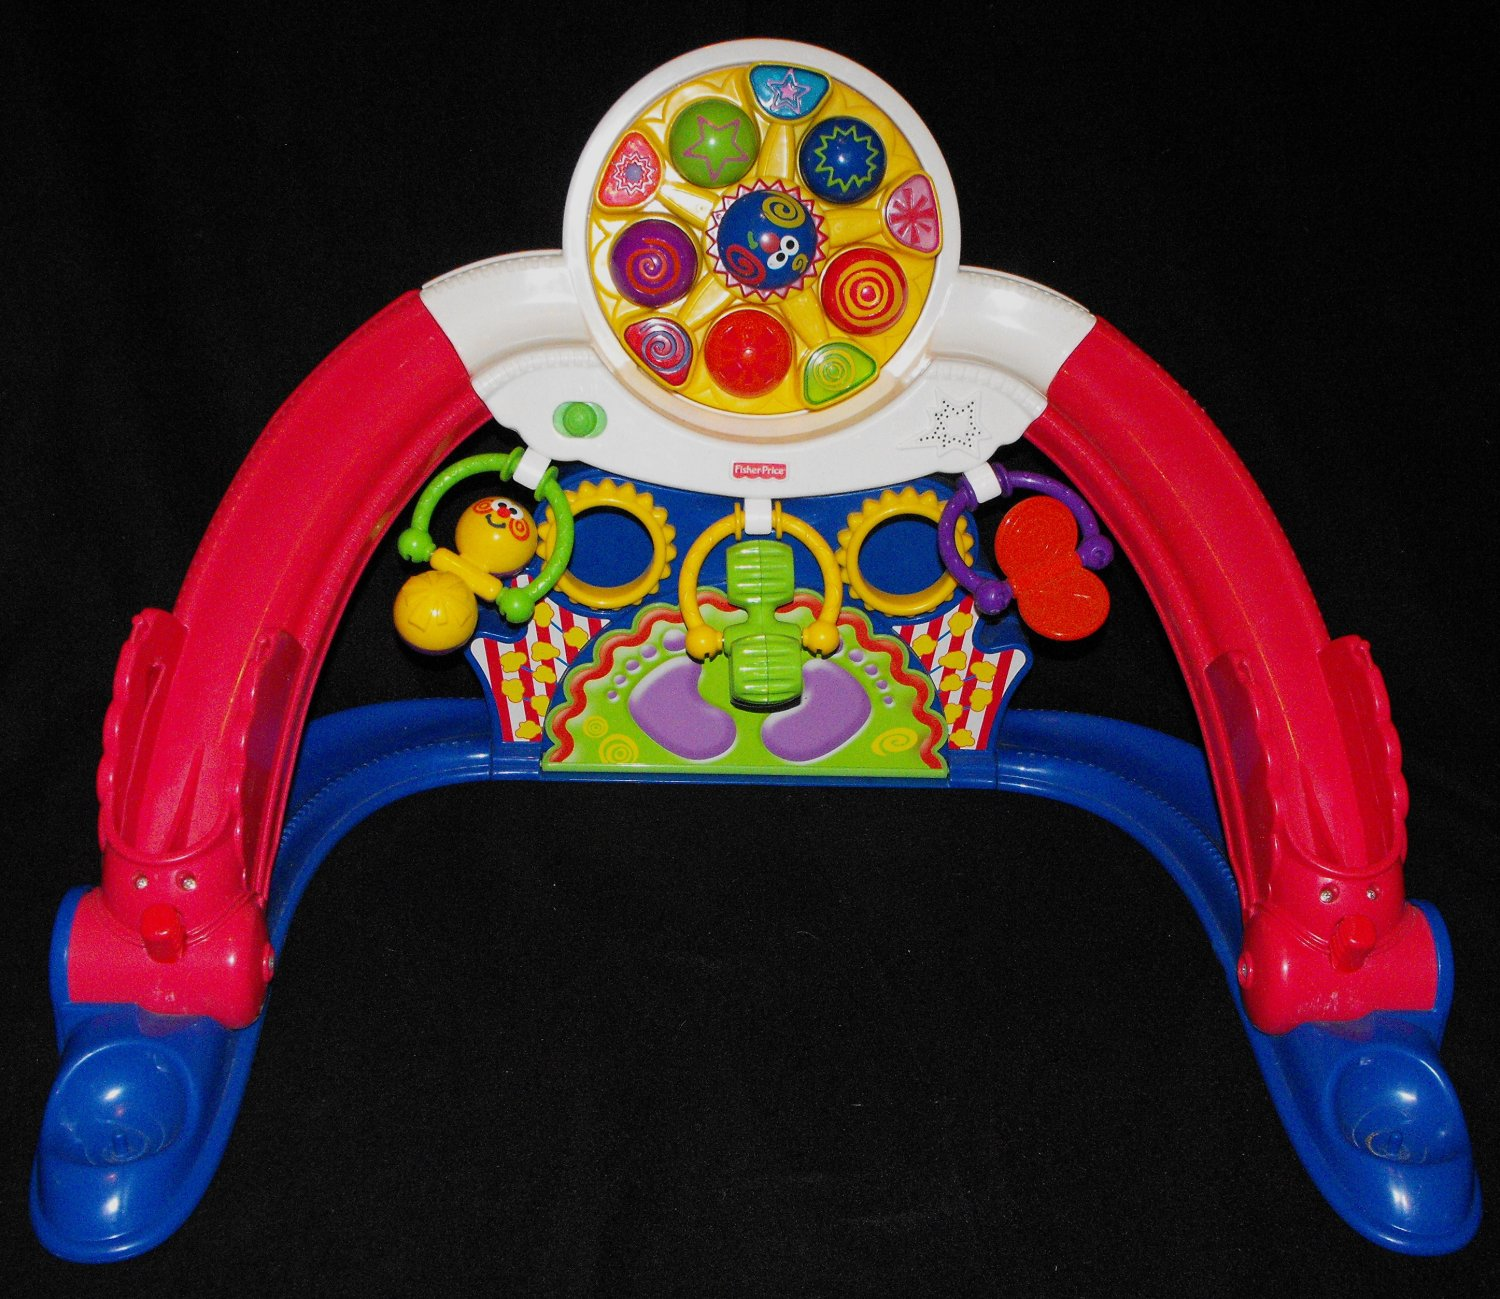 *SOLD~Awaiting Feedback~FISHER PRICE BABY PLAYZONE KICK AND WHIRL CARNIVAL GYM